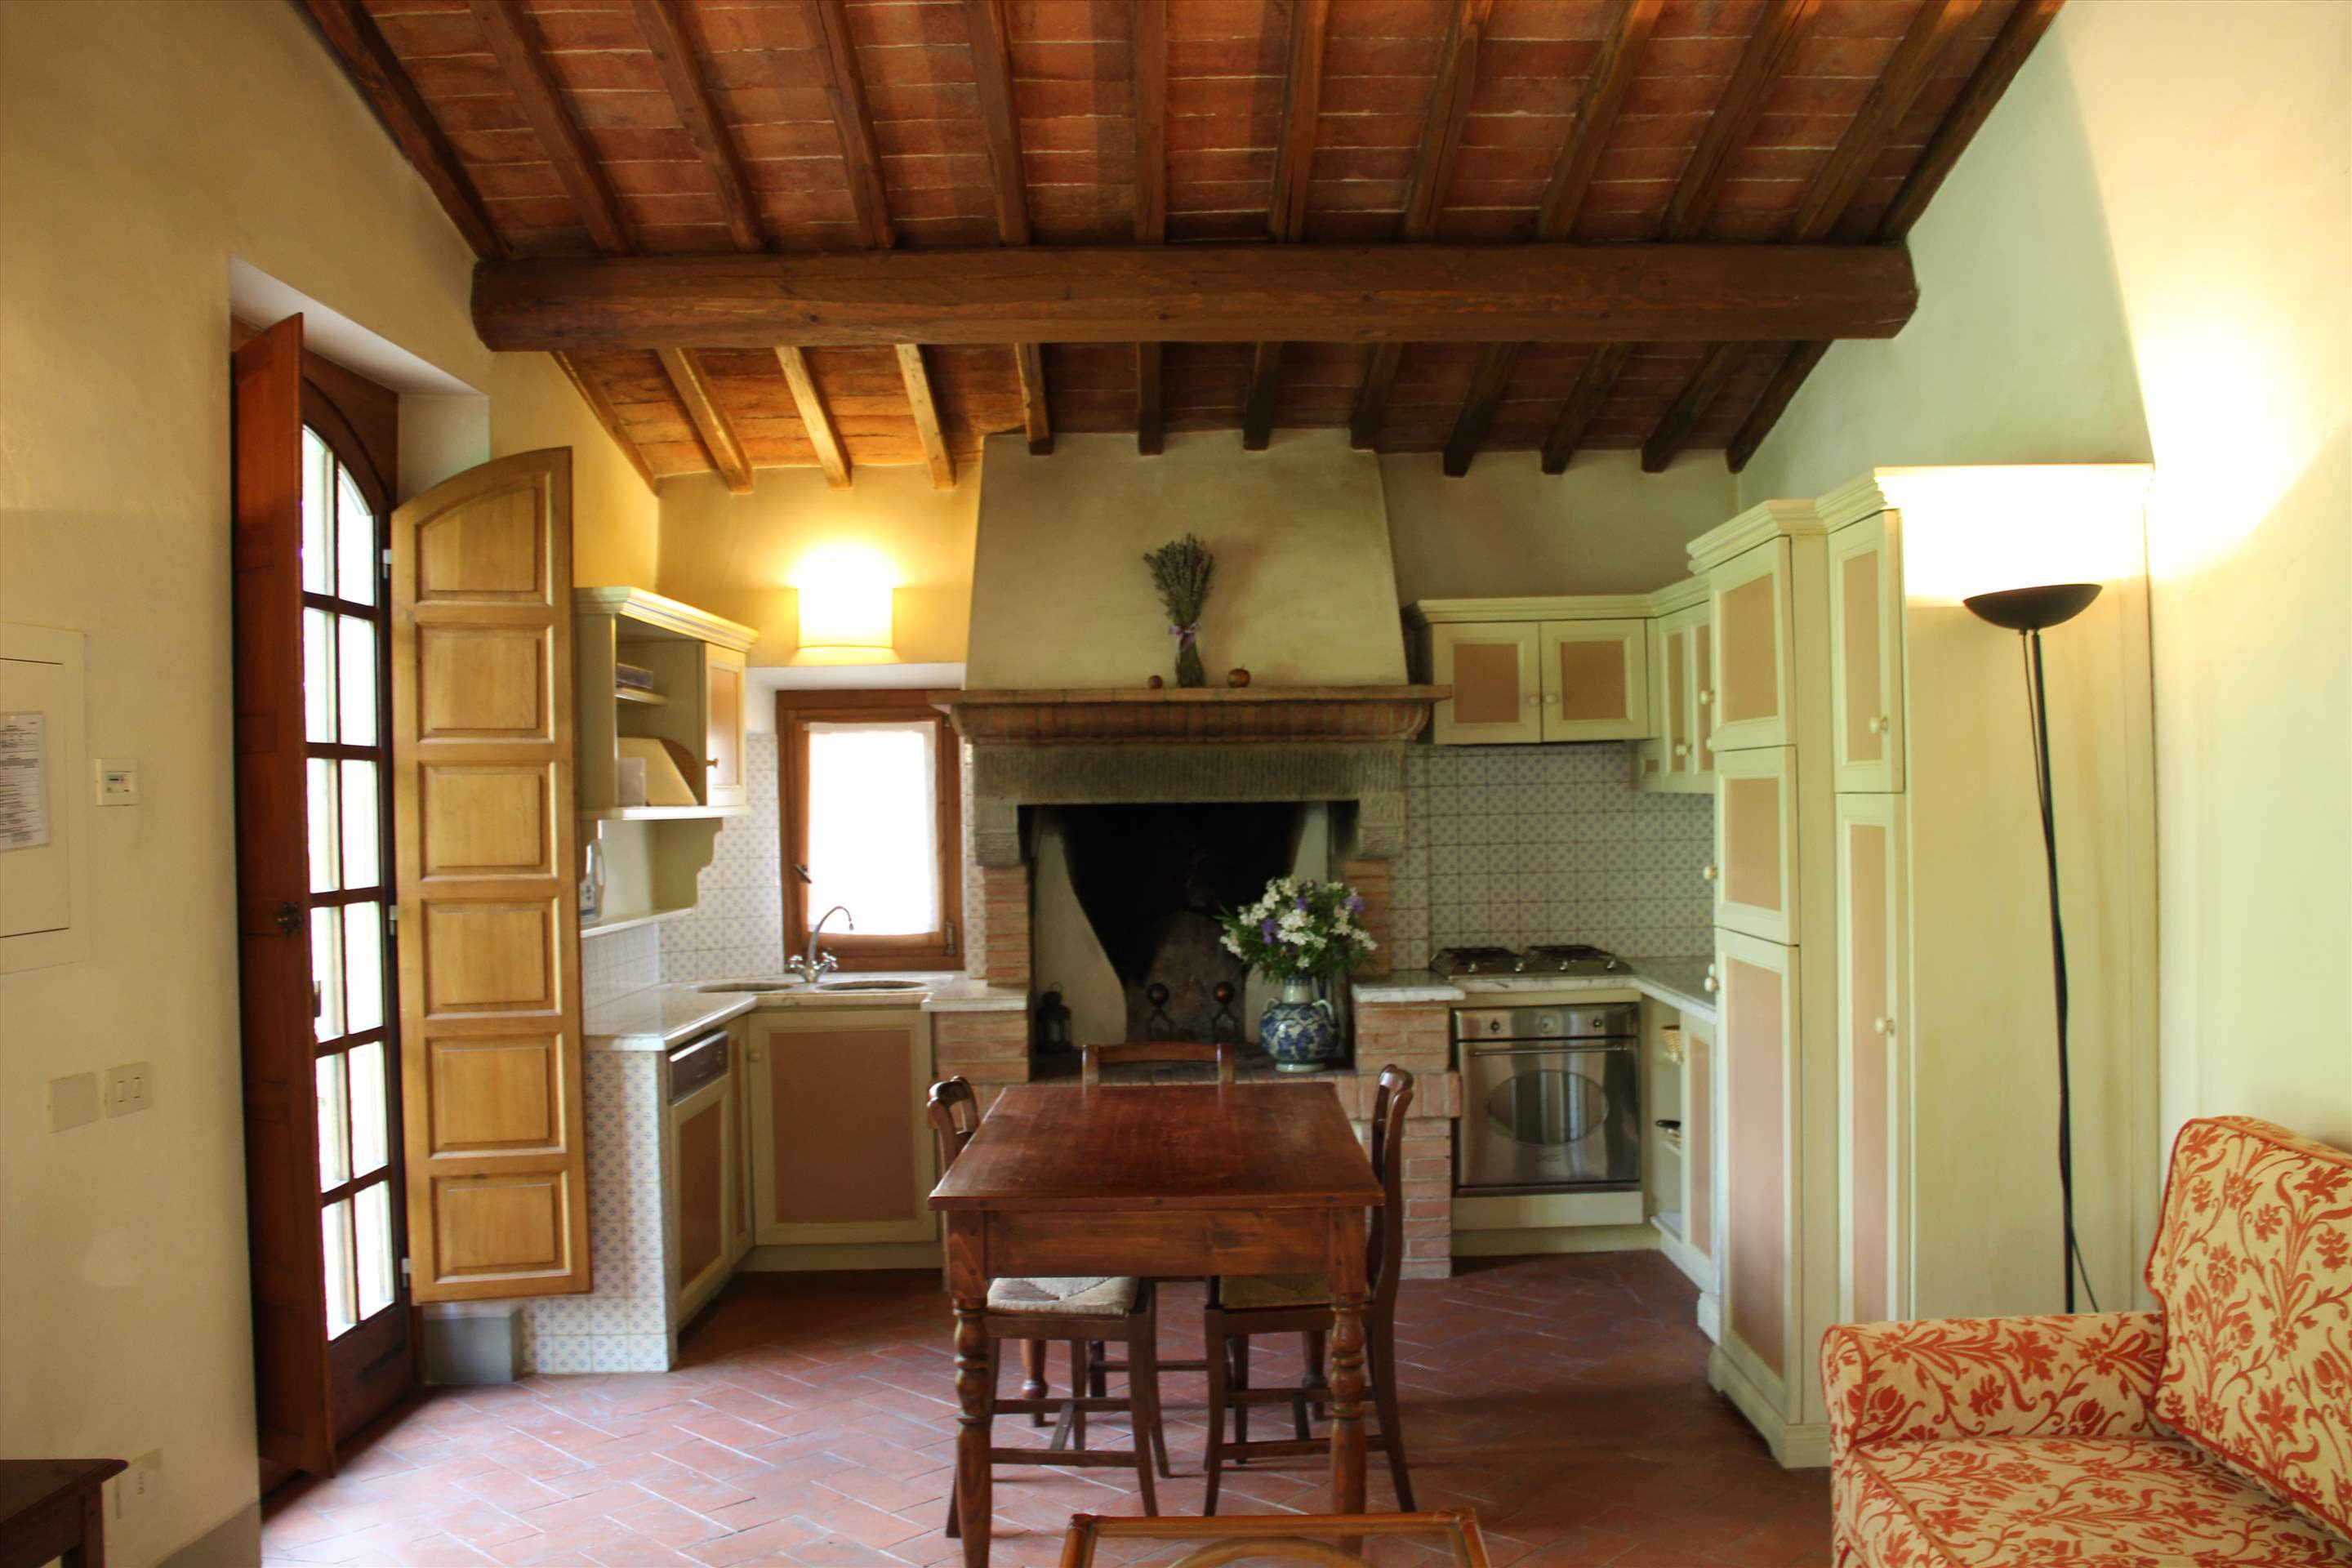 Apartment Limonaia, 1 bedroom apartment in Chianti & Countryside, Tuscany Photo #4